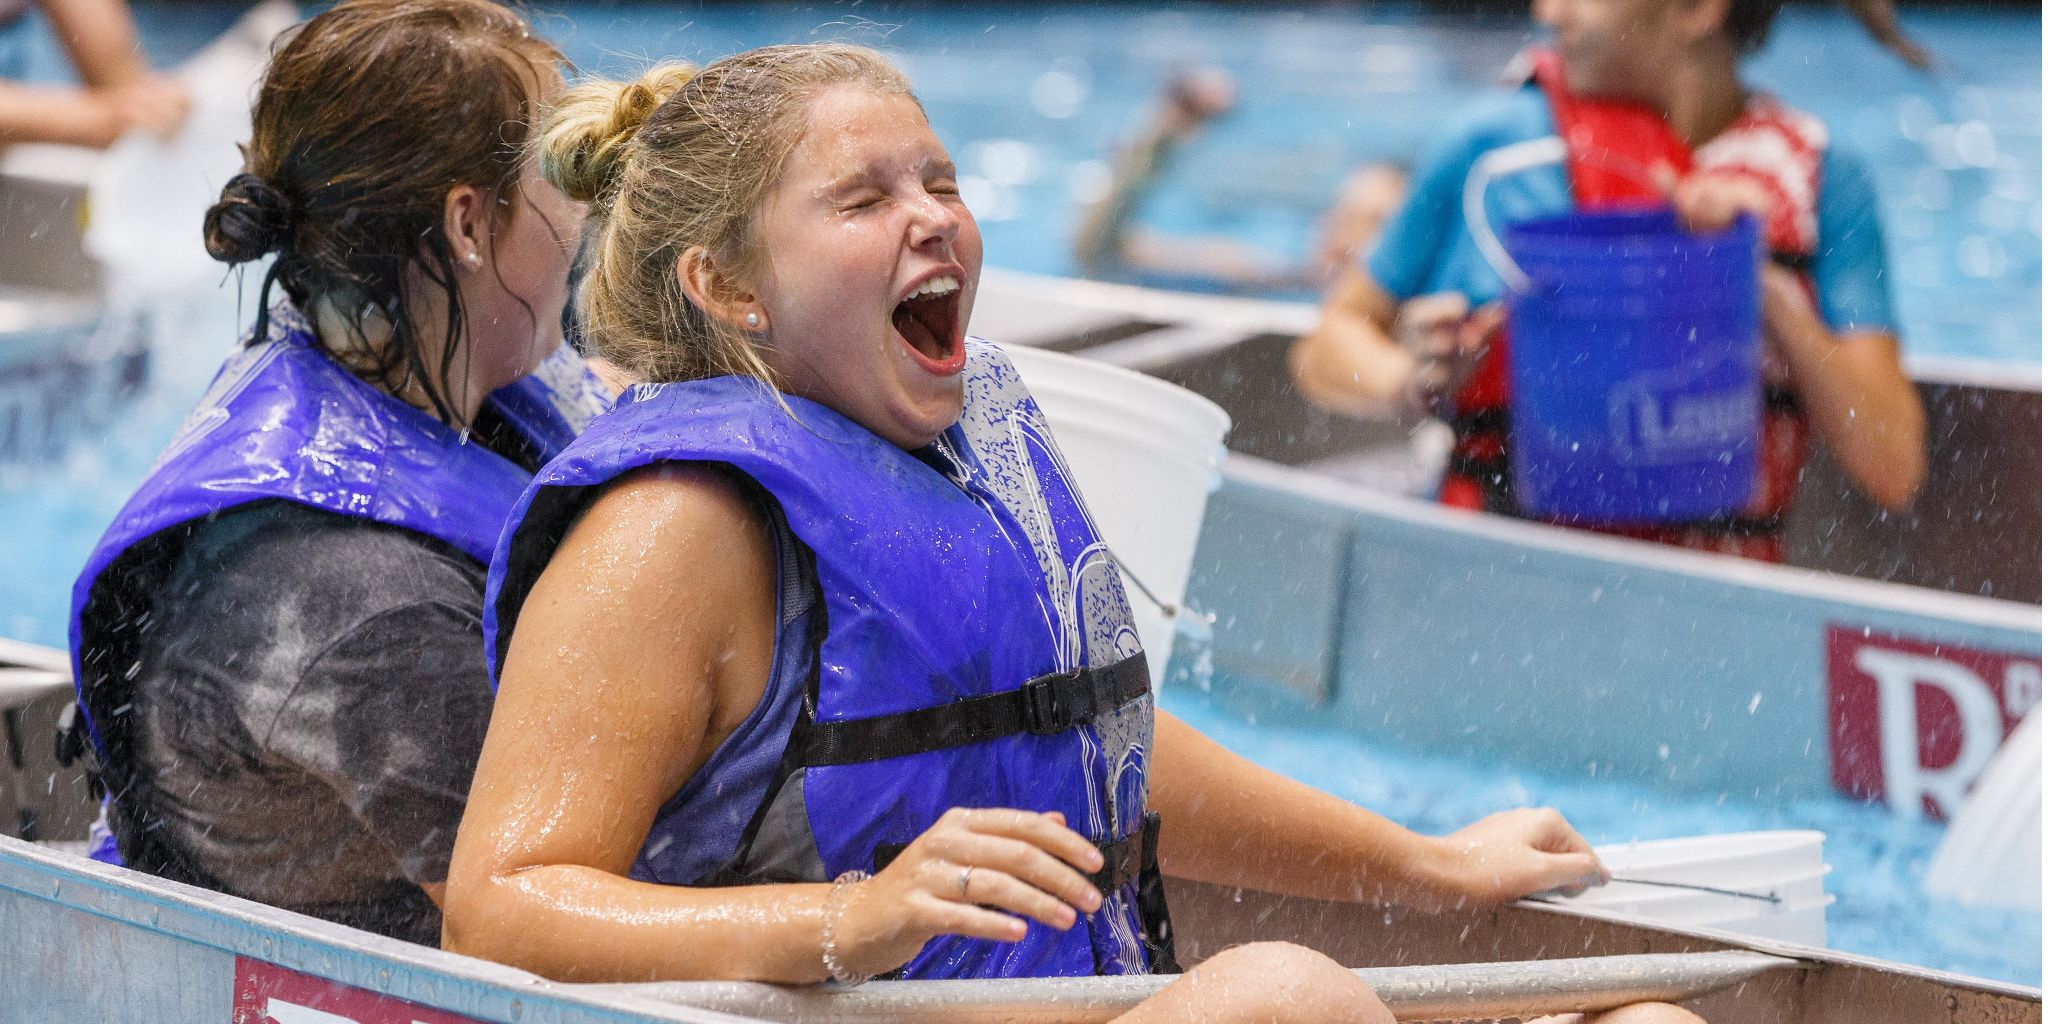 A student reacts to being splashed in a canoe.